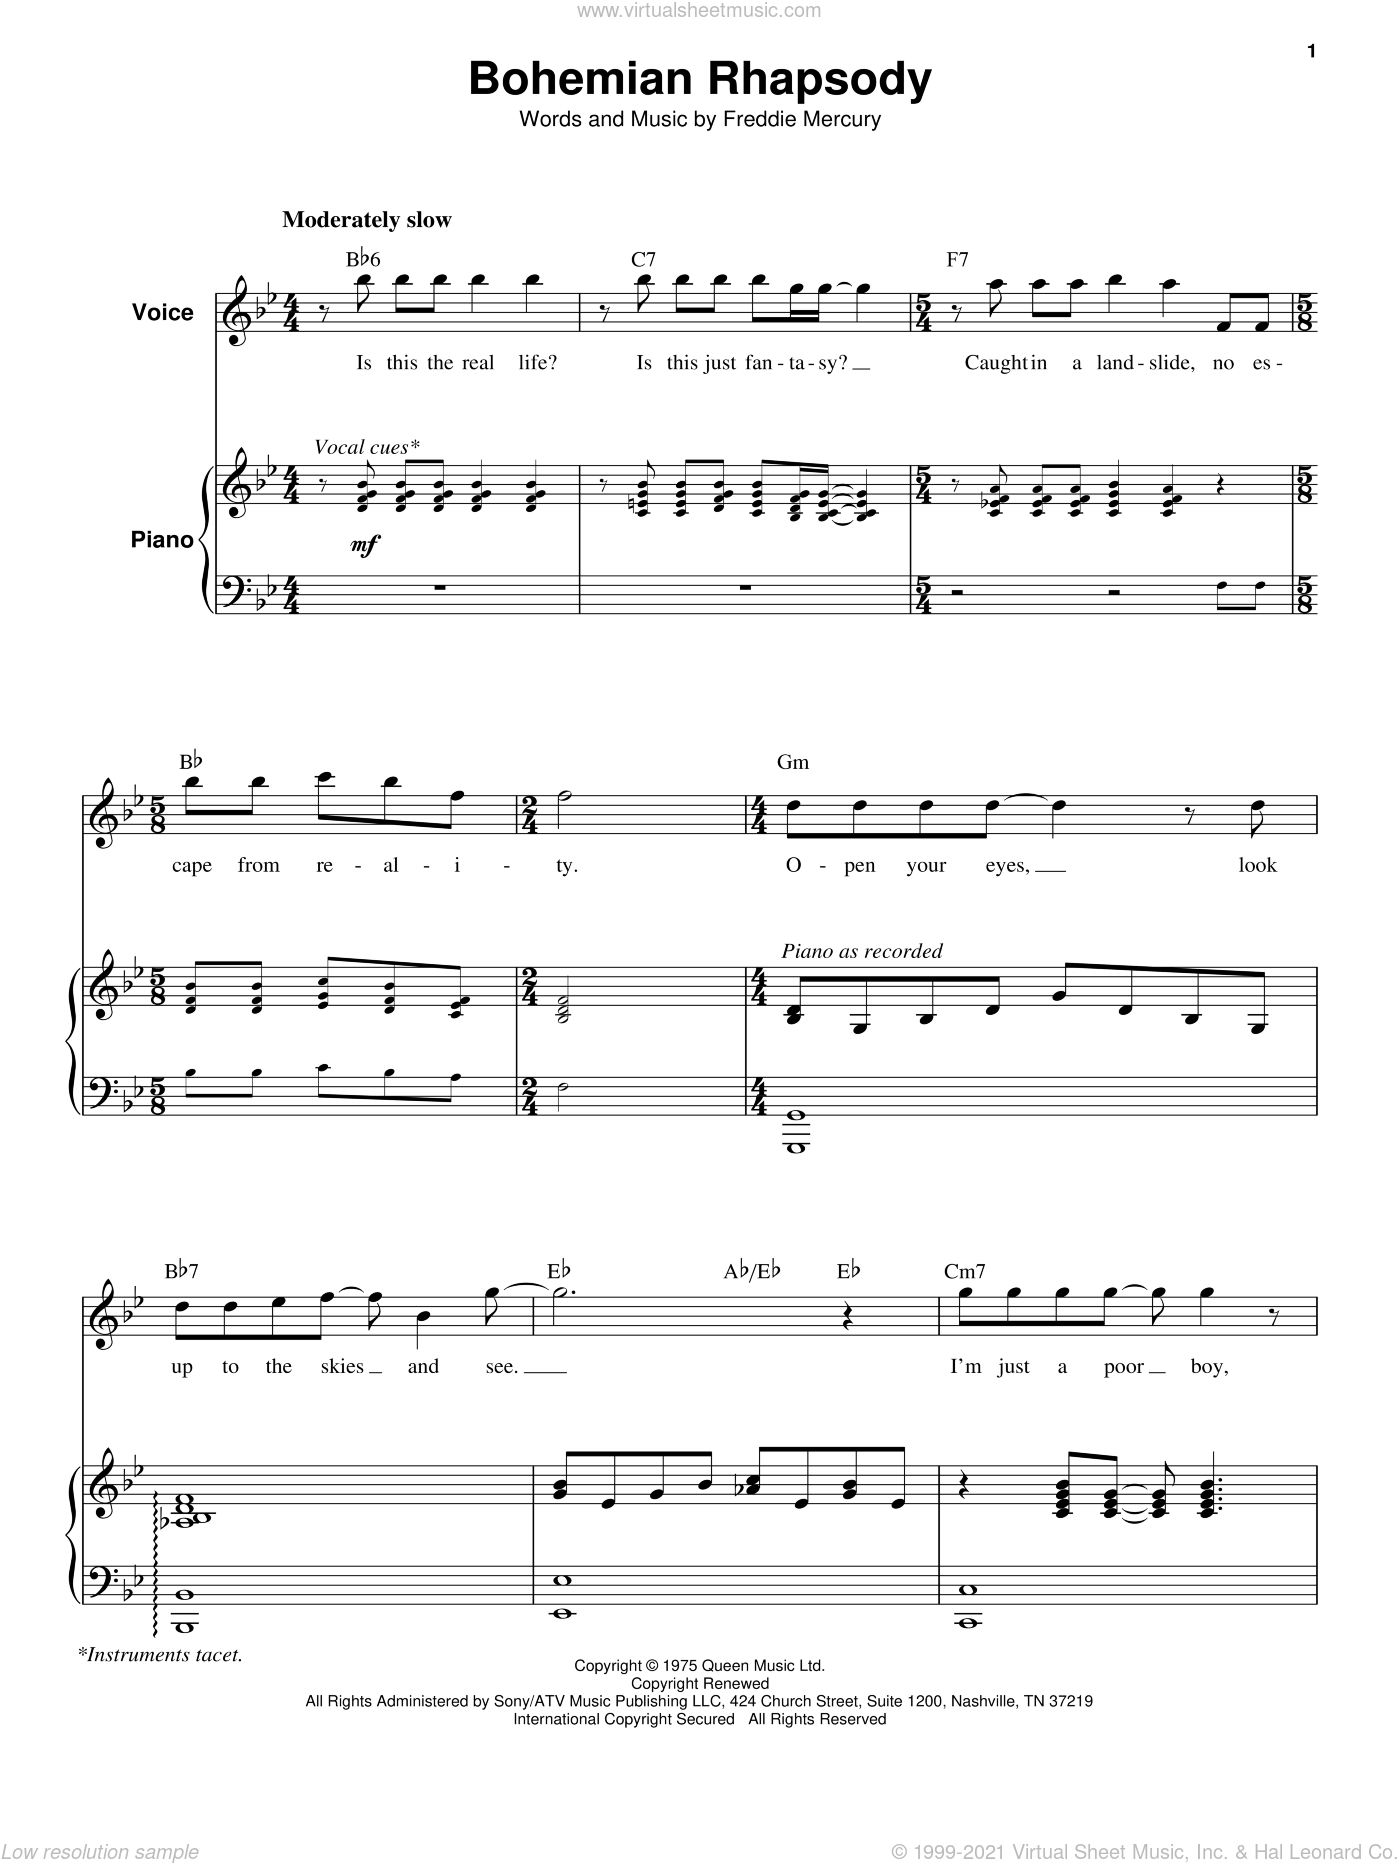 Bohemian Rhapsody sheet music for keyboard or piano by Queen and Freddie Mercury, intermediate skill level